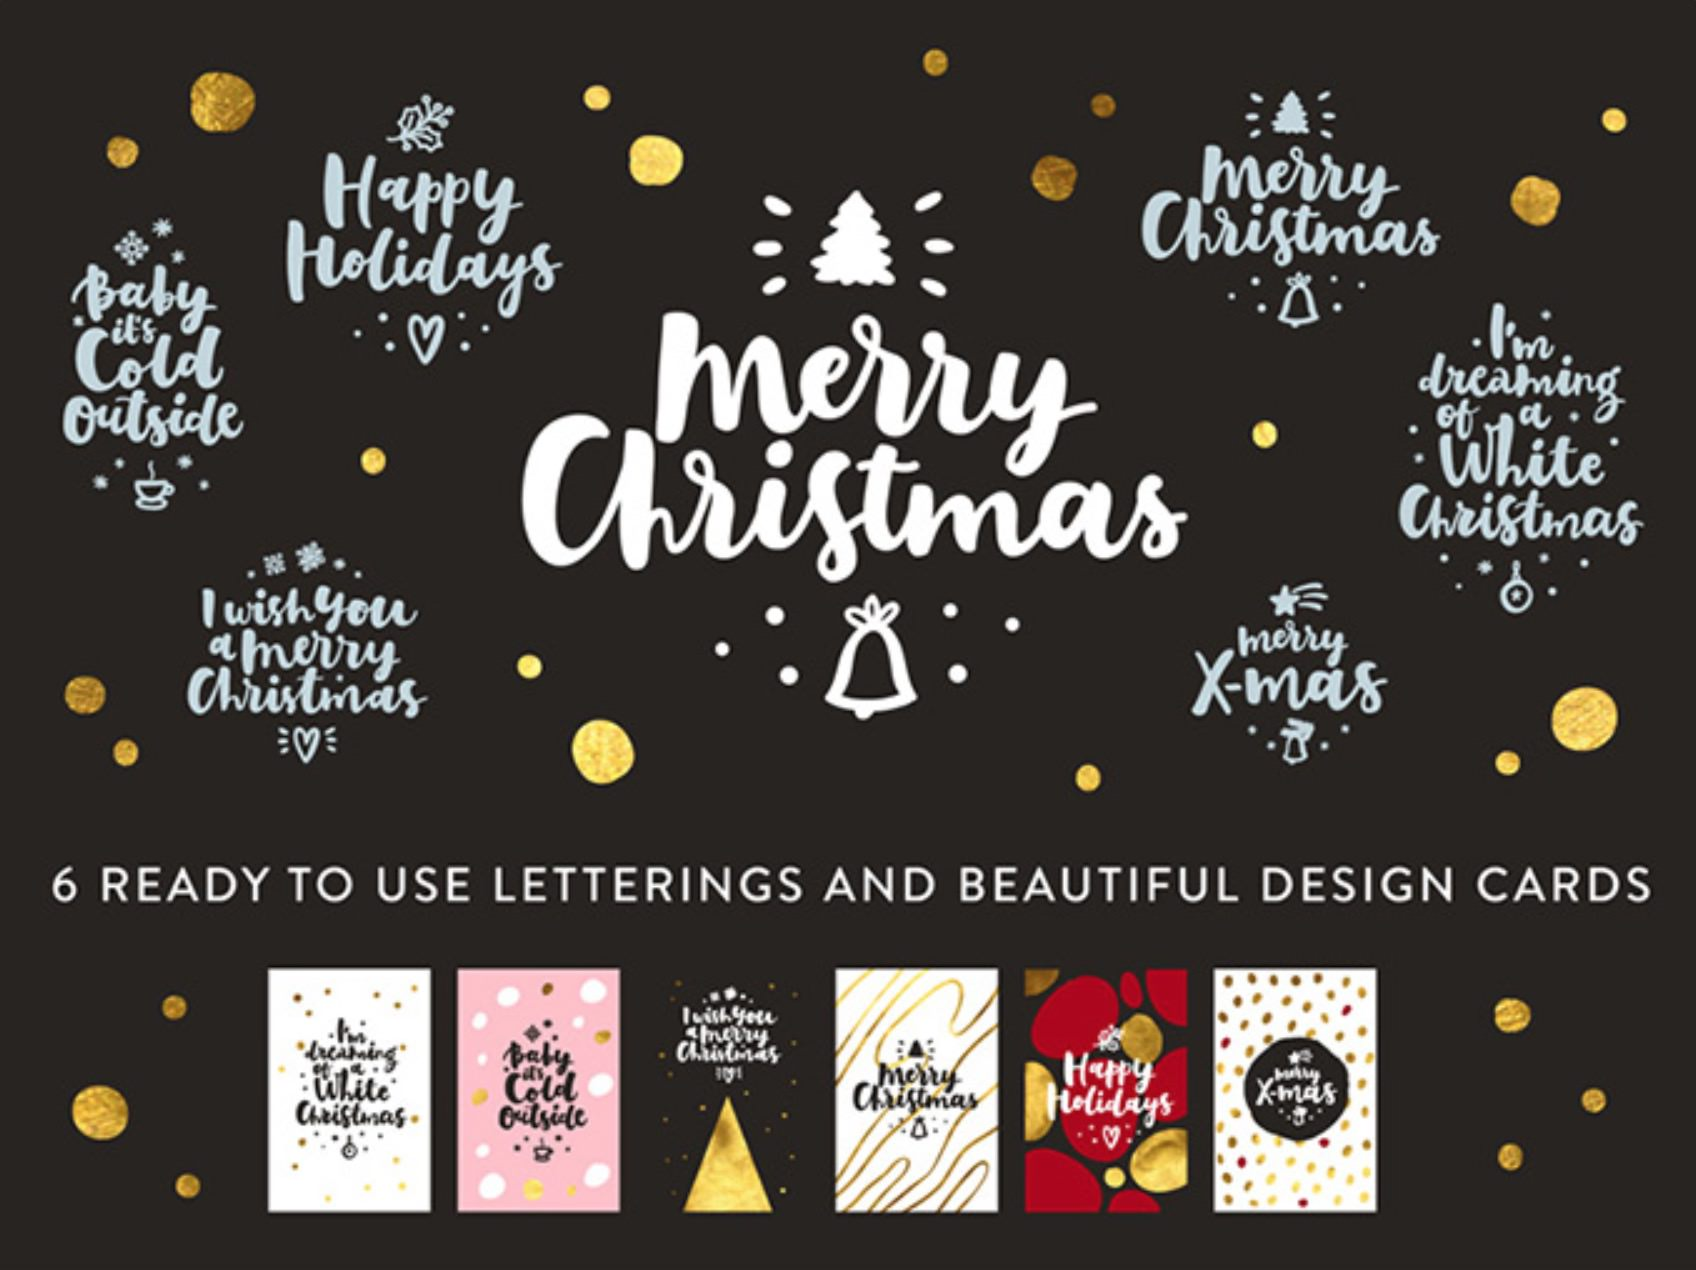 Christmas greeting vectors available for free.